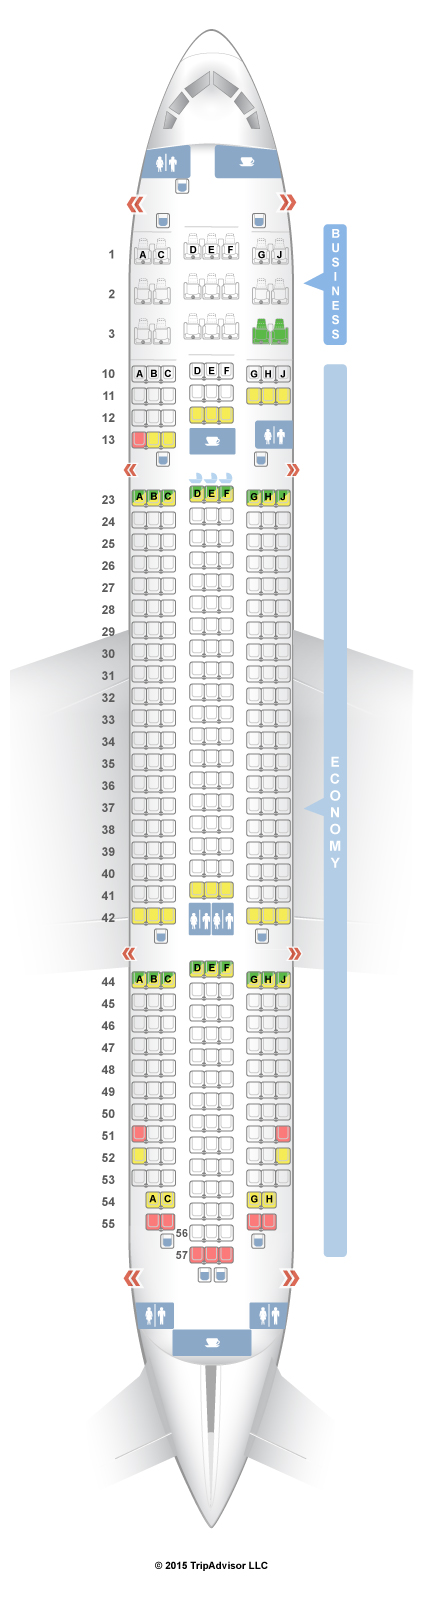 Seatguru Seat Map Jetstar Boeing 787 8 788 Seatguru Norwegian Air Malaysia Airlines